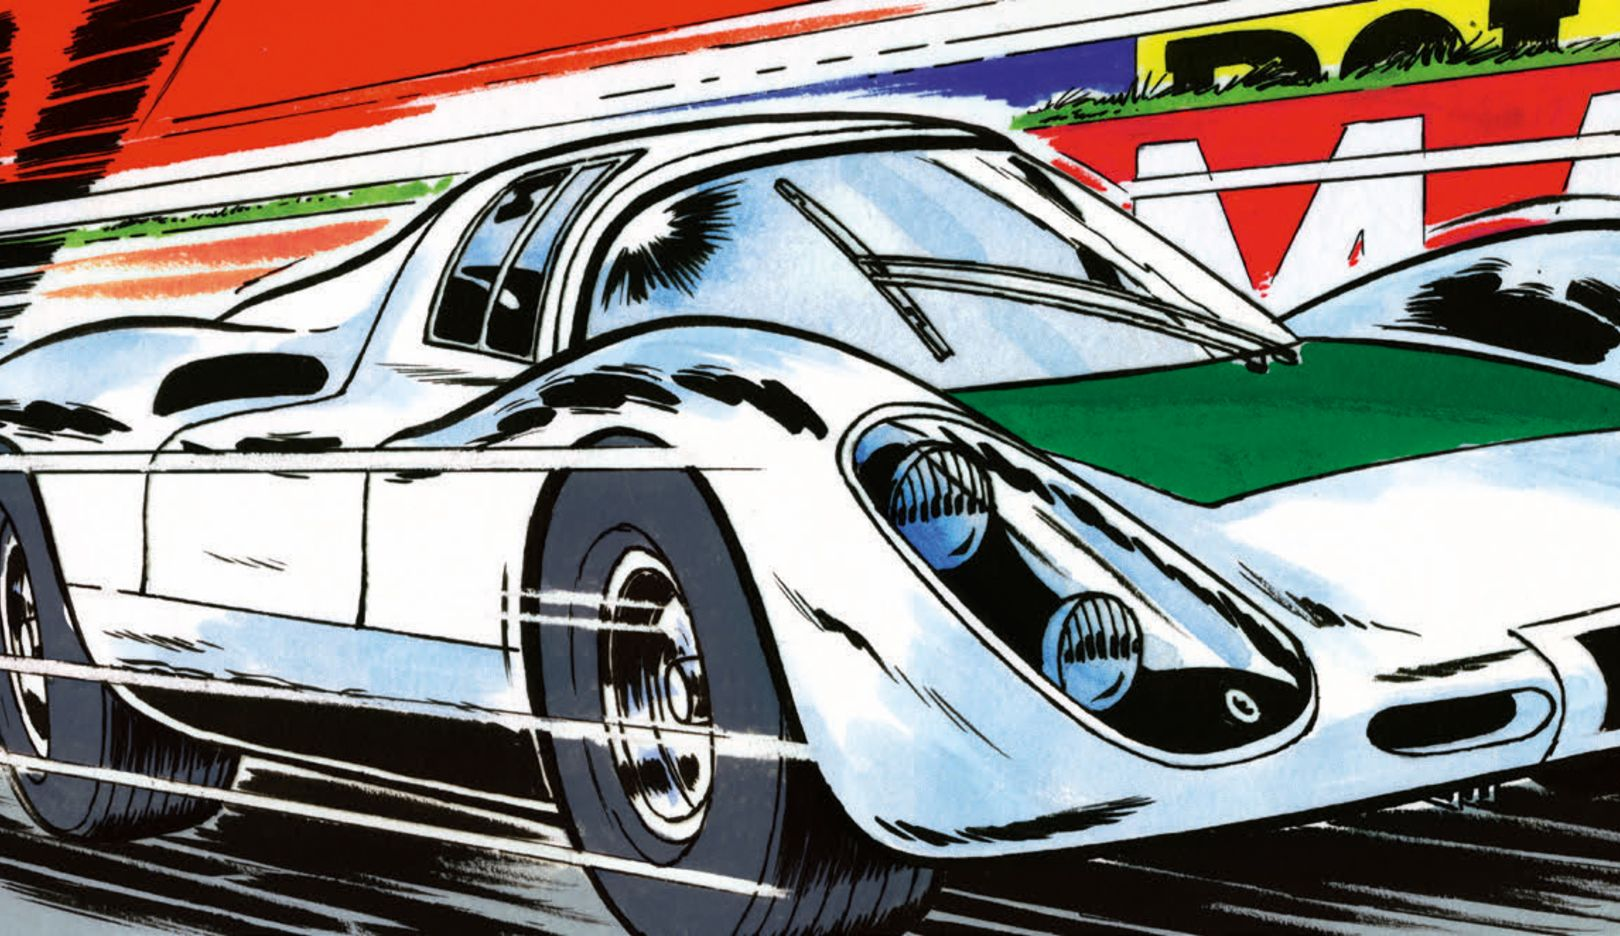 Michel Vaillant comic, 2020, Porsche AG